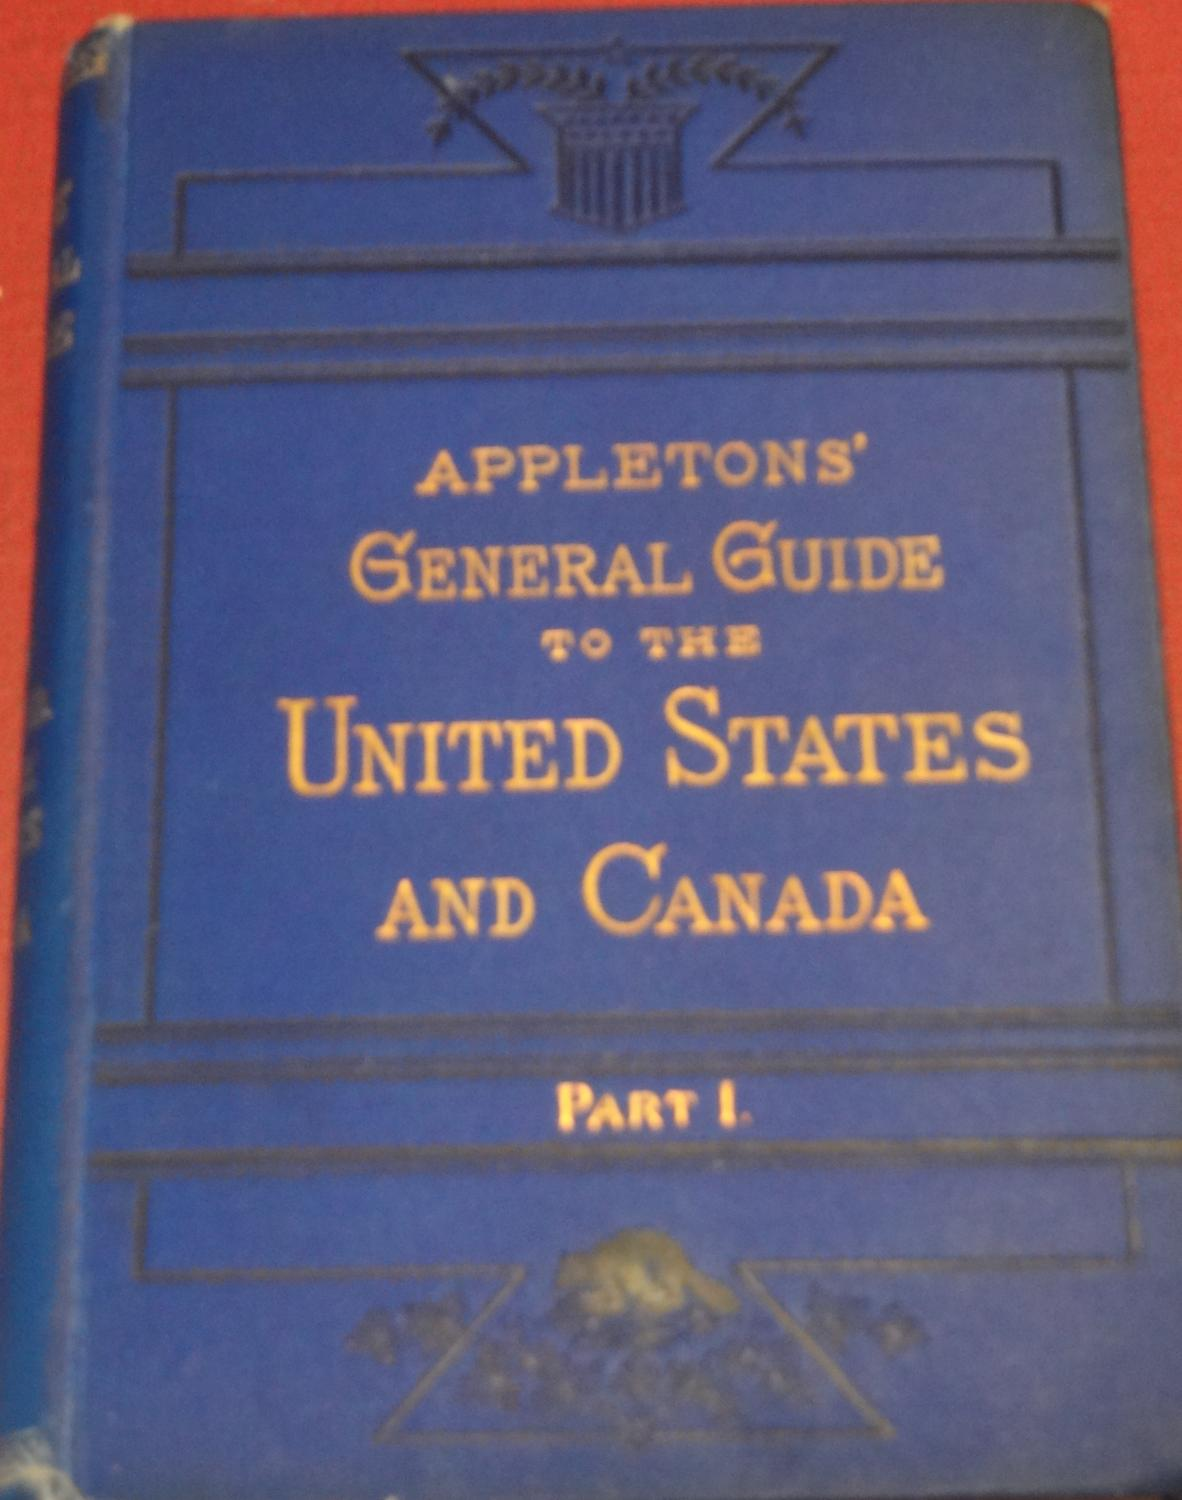 Appletons' General Guide to the United States and Canada Part 1